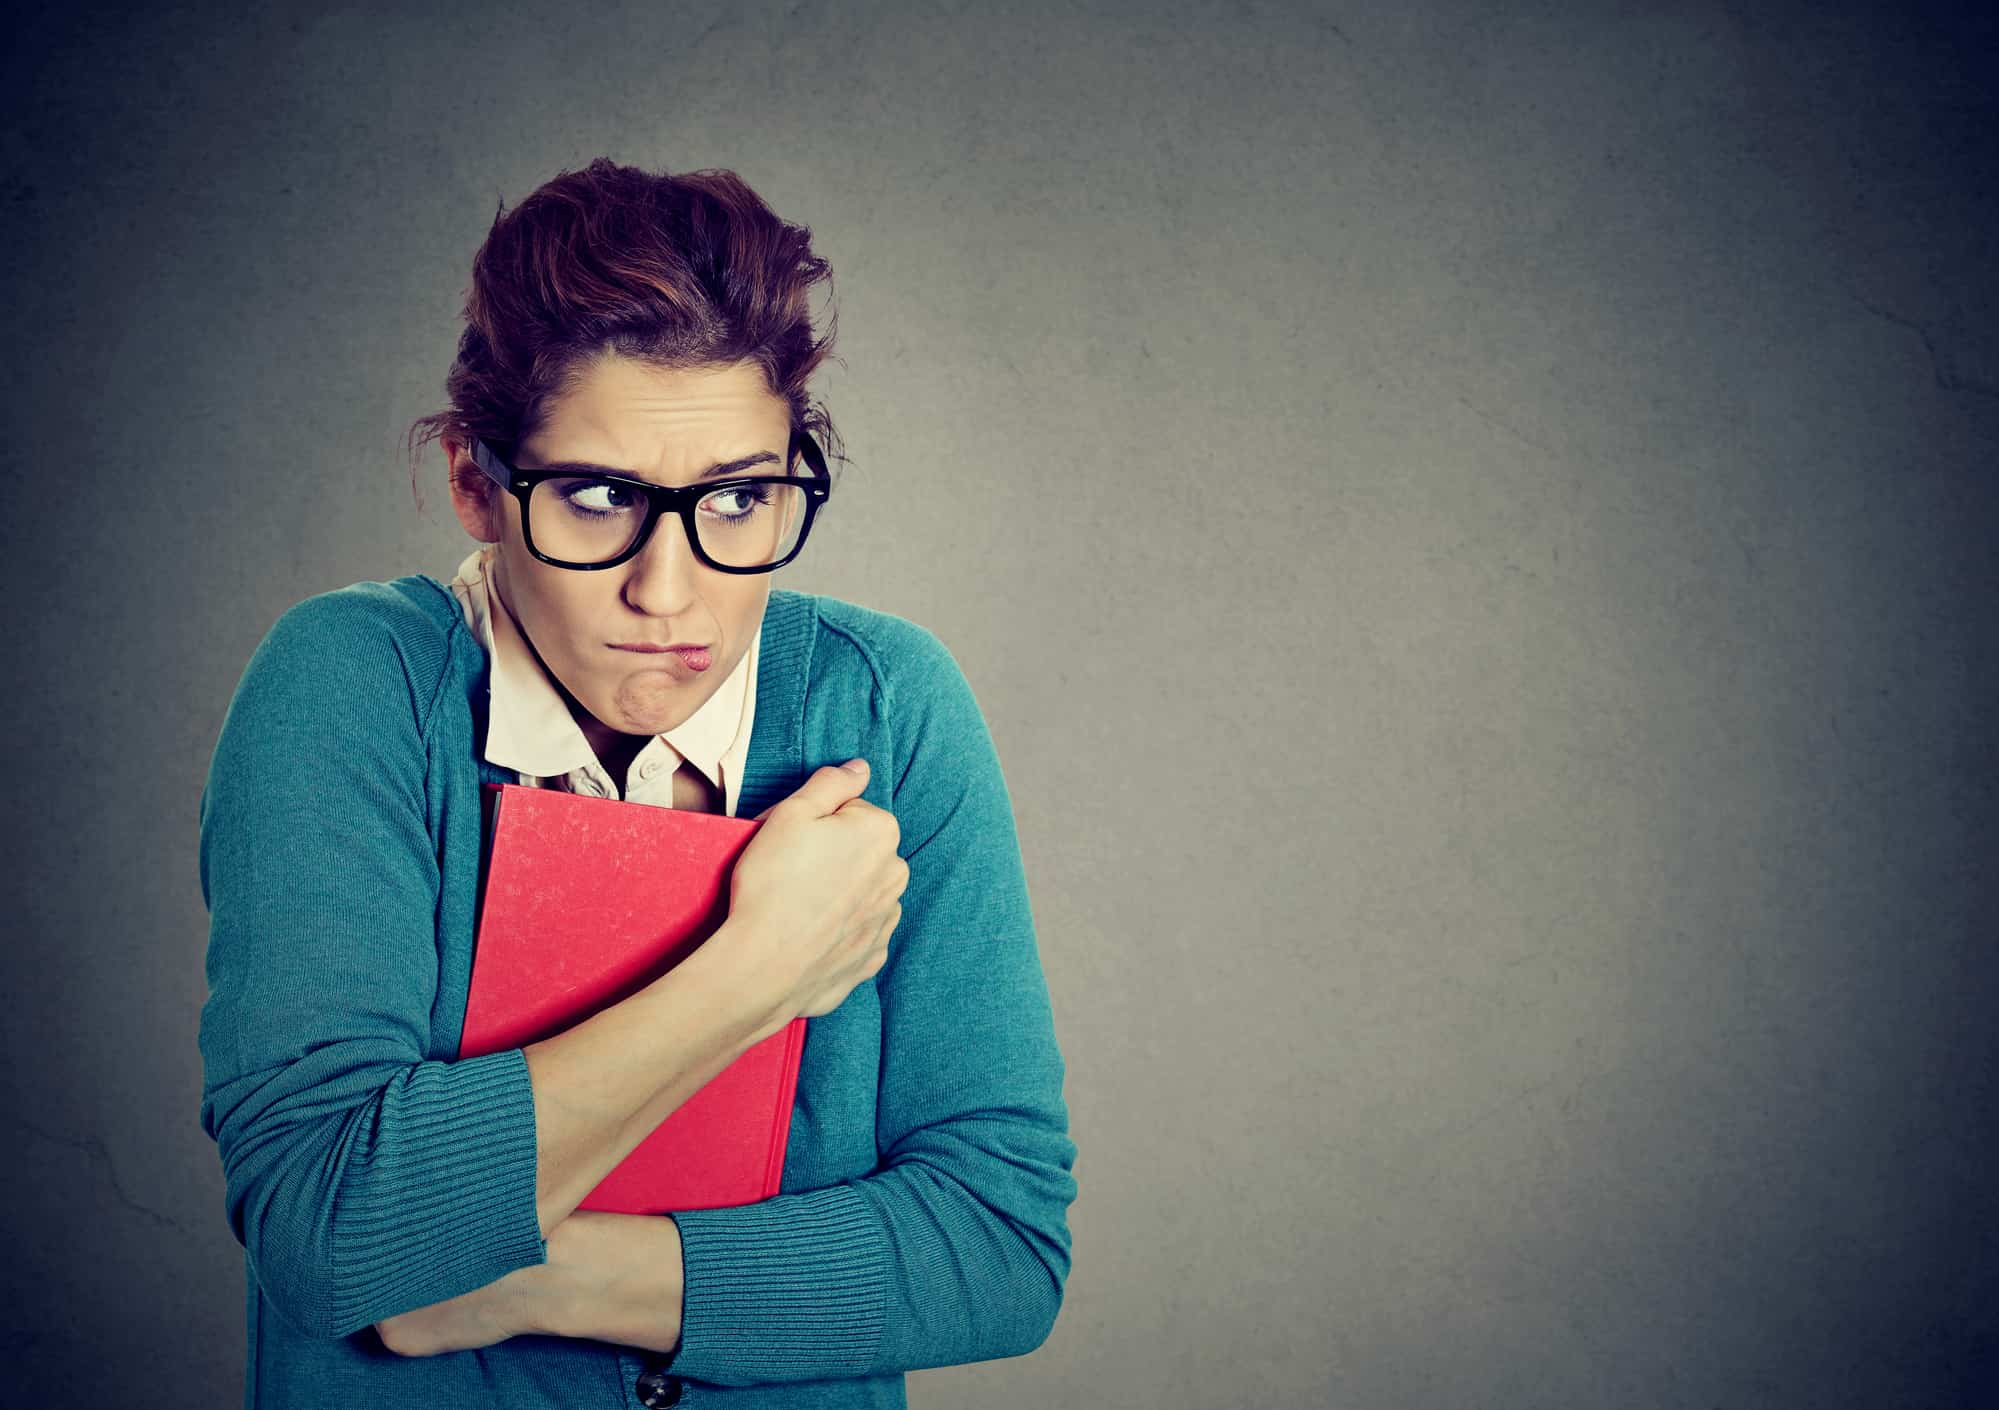 Signs You Are An Unattractive Woman (37 Unfortunate Signs